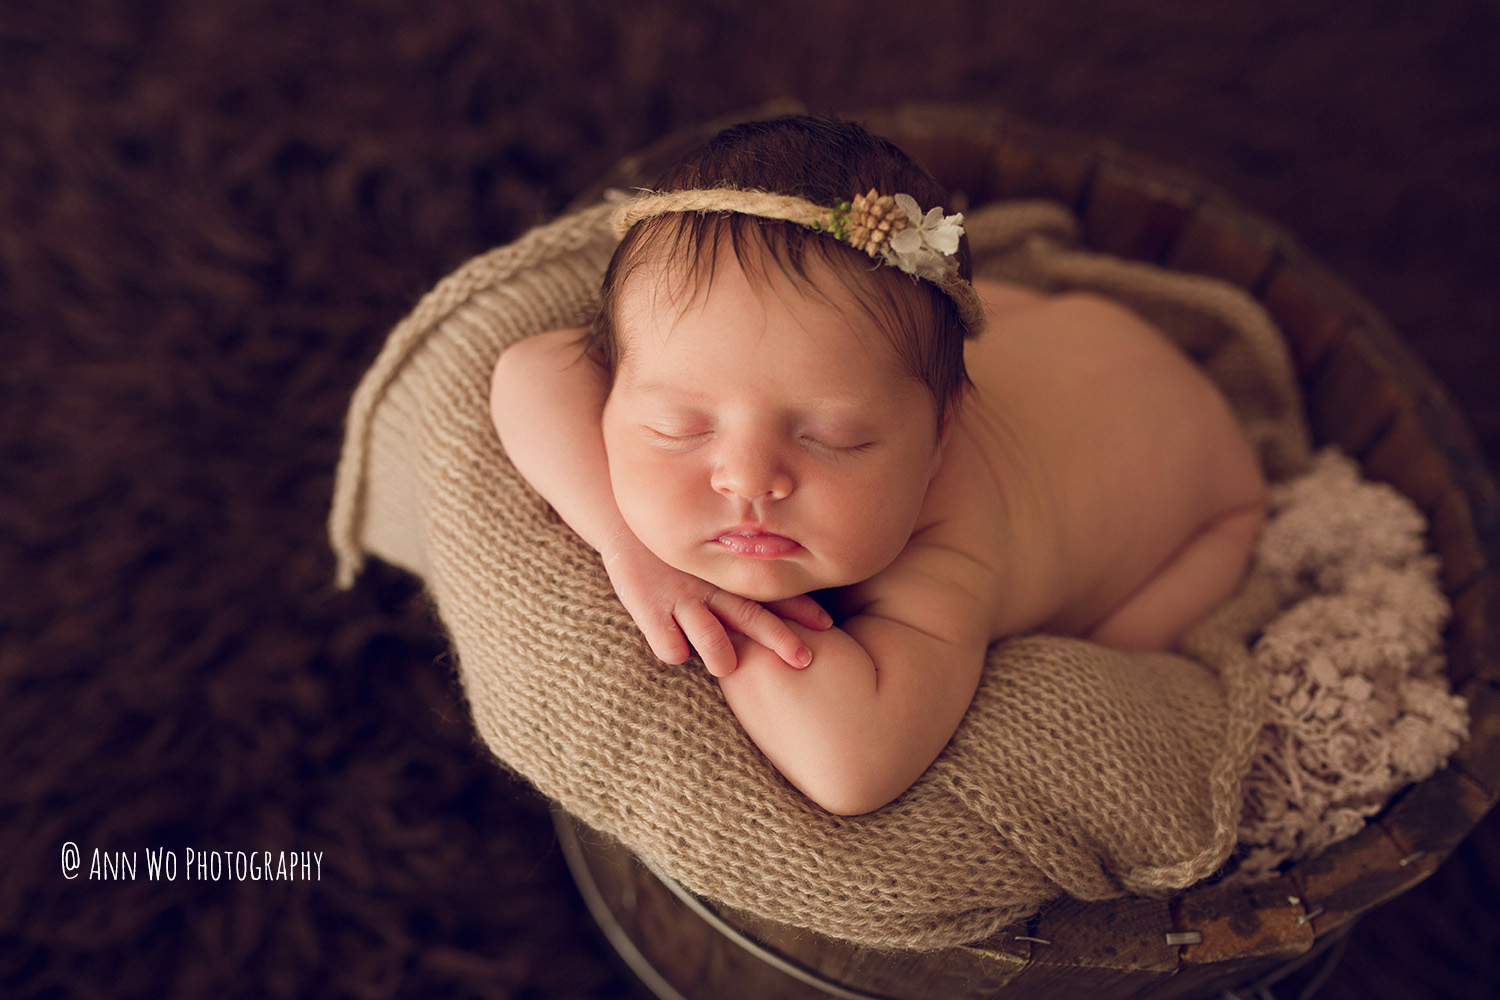 Newborn photography in London by Ann Wo bucket rustic headband